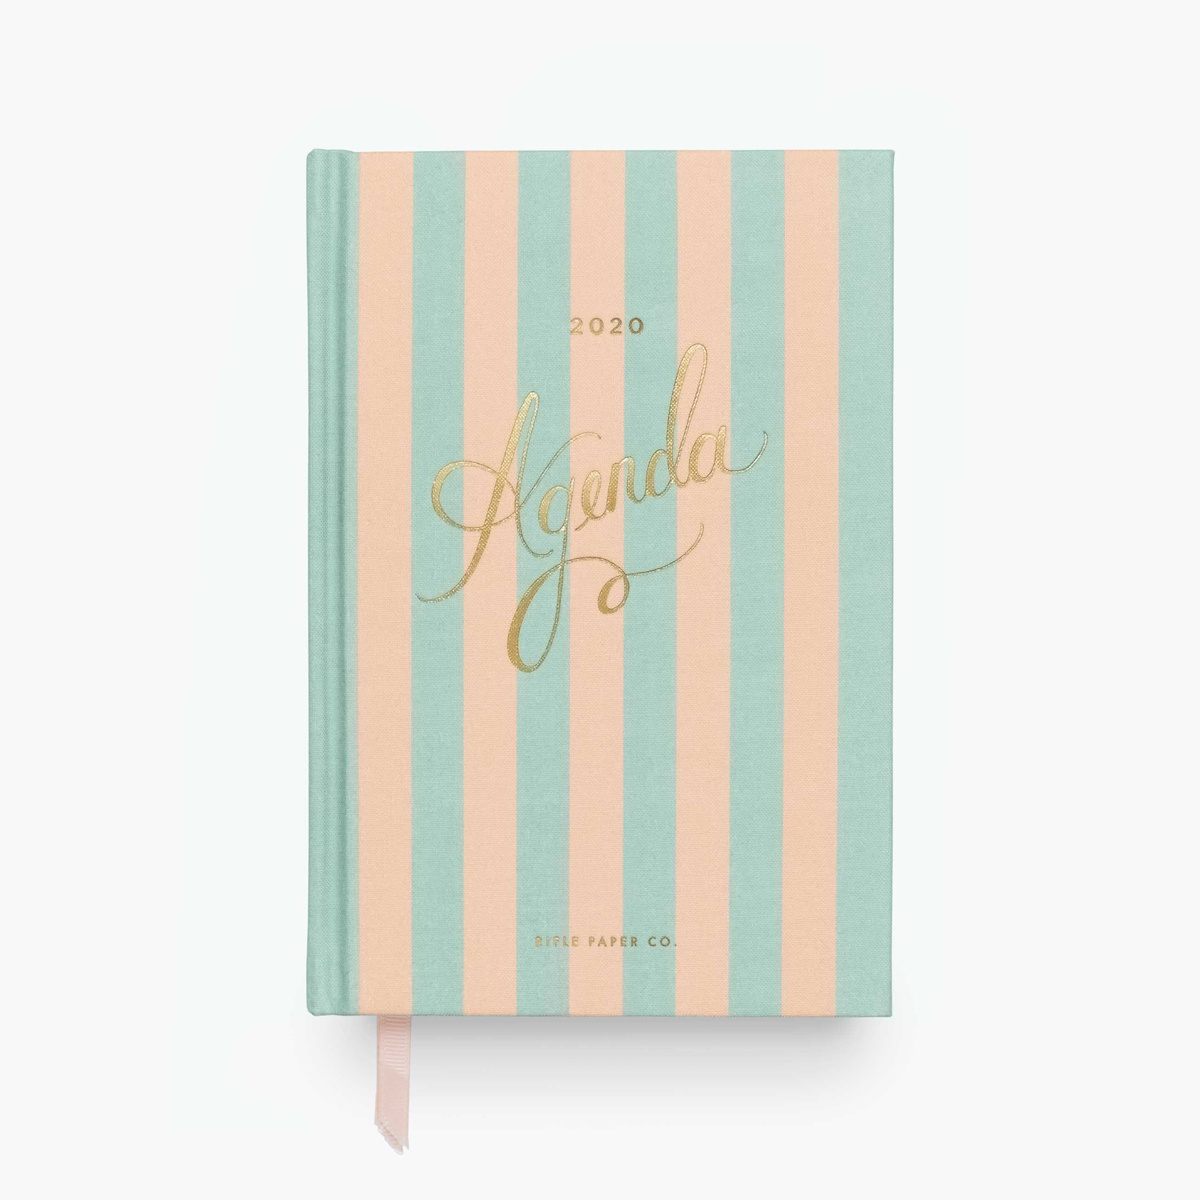 Rifle Paper Co. Rifle Paper Co. 2020 Cabana 12 Month Hardcover Agenda